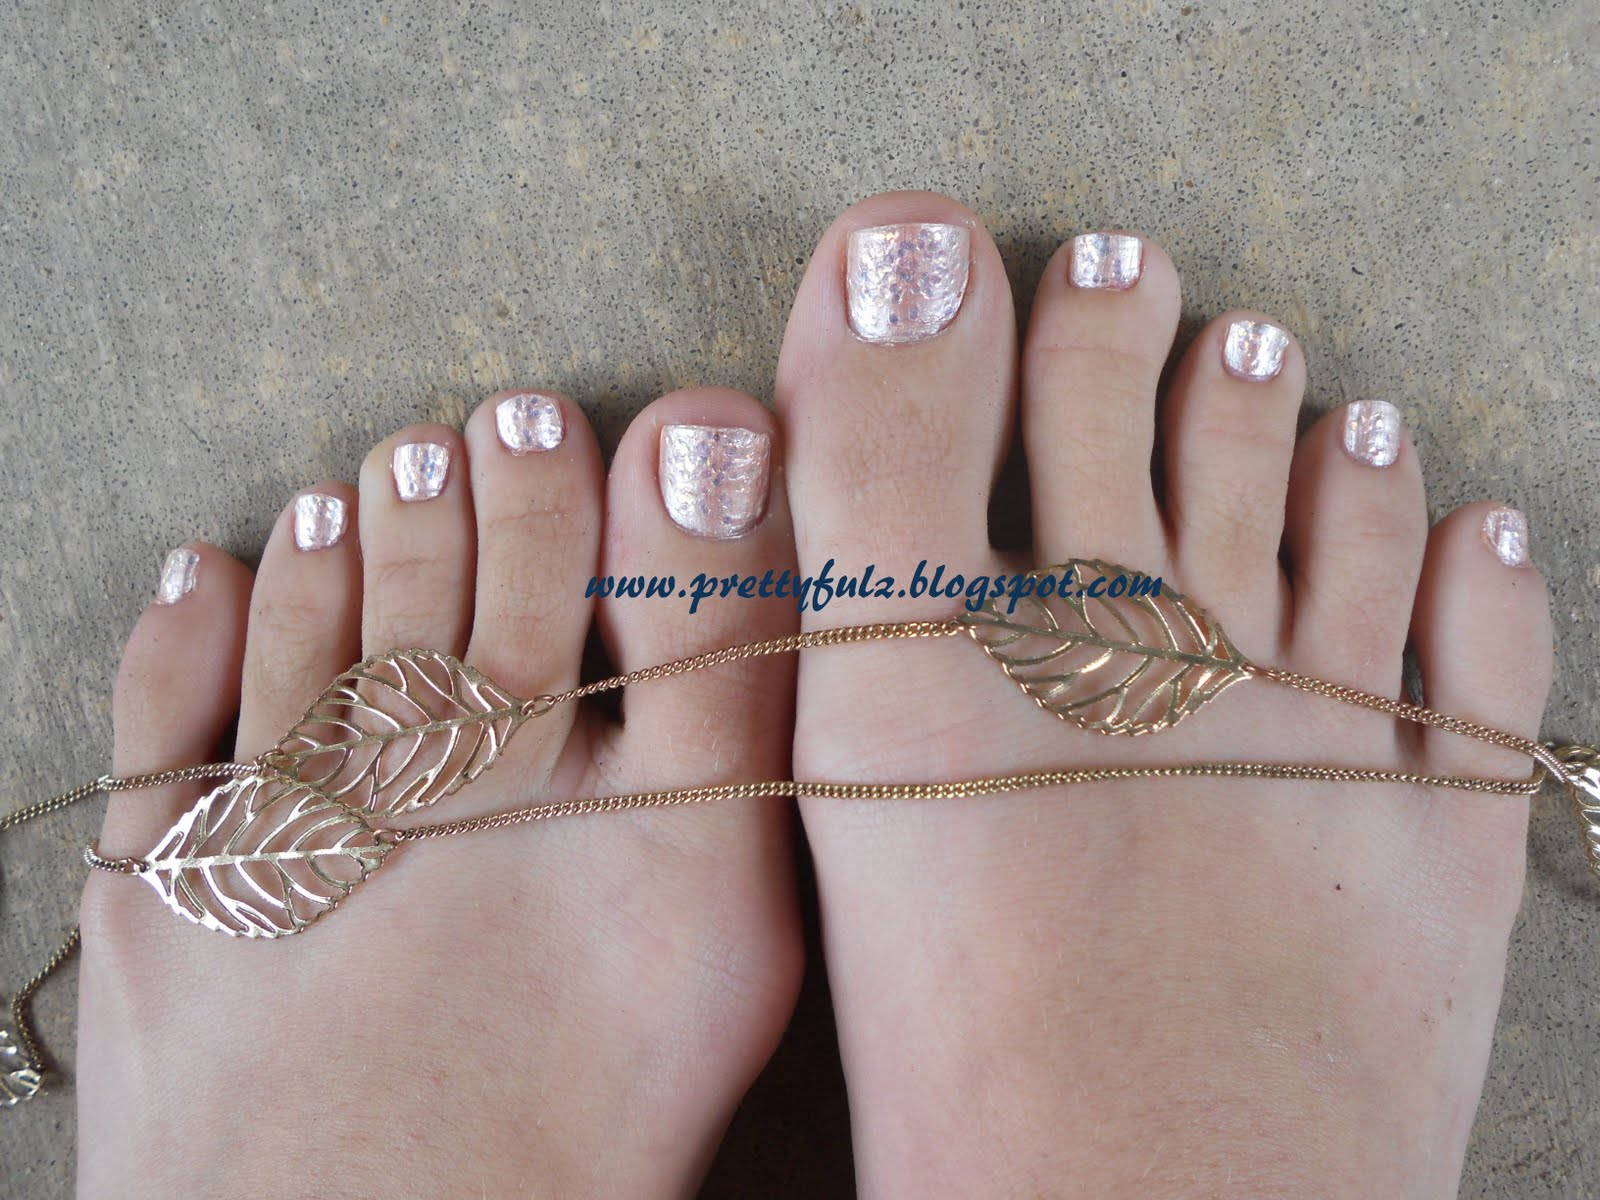 What Nail Polish Color Looks Best On Toes